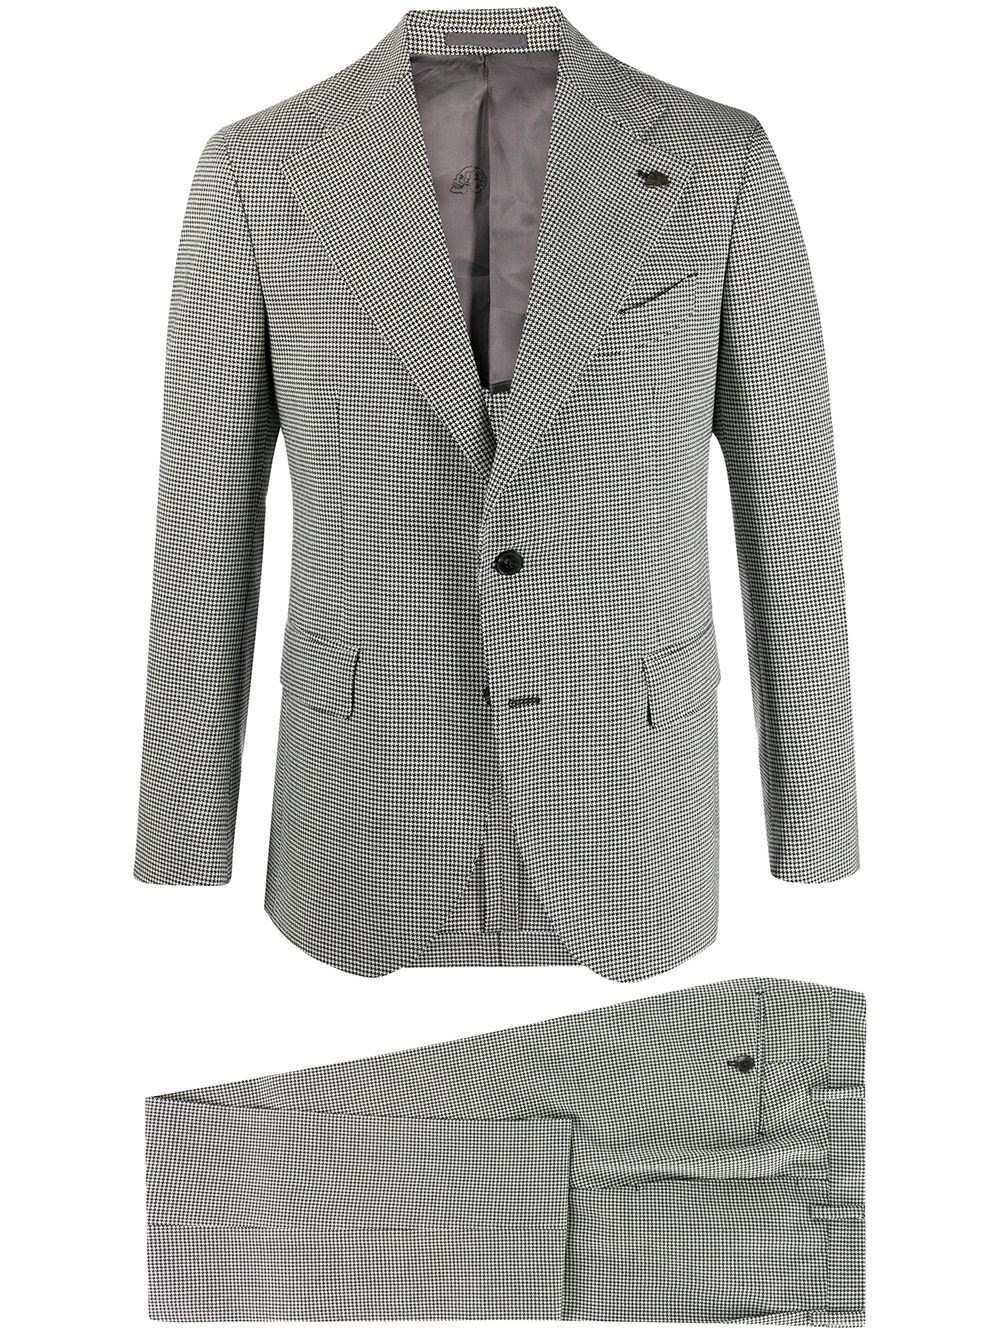 GABRIELE PASINI Single Breasted Houndstooth Suit